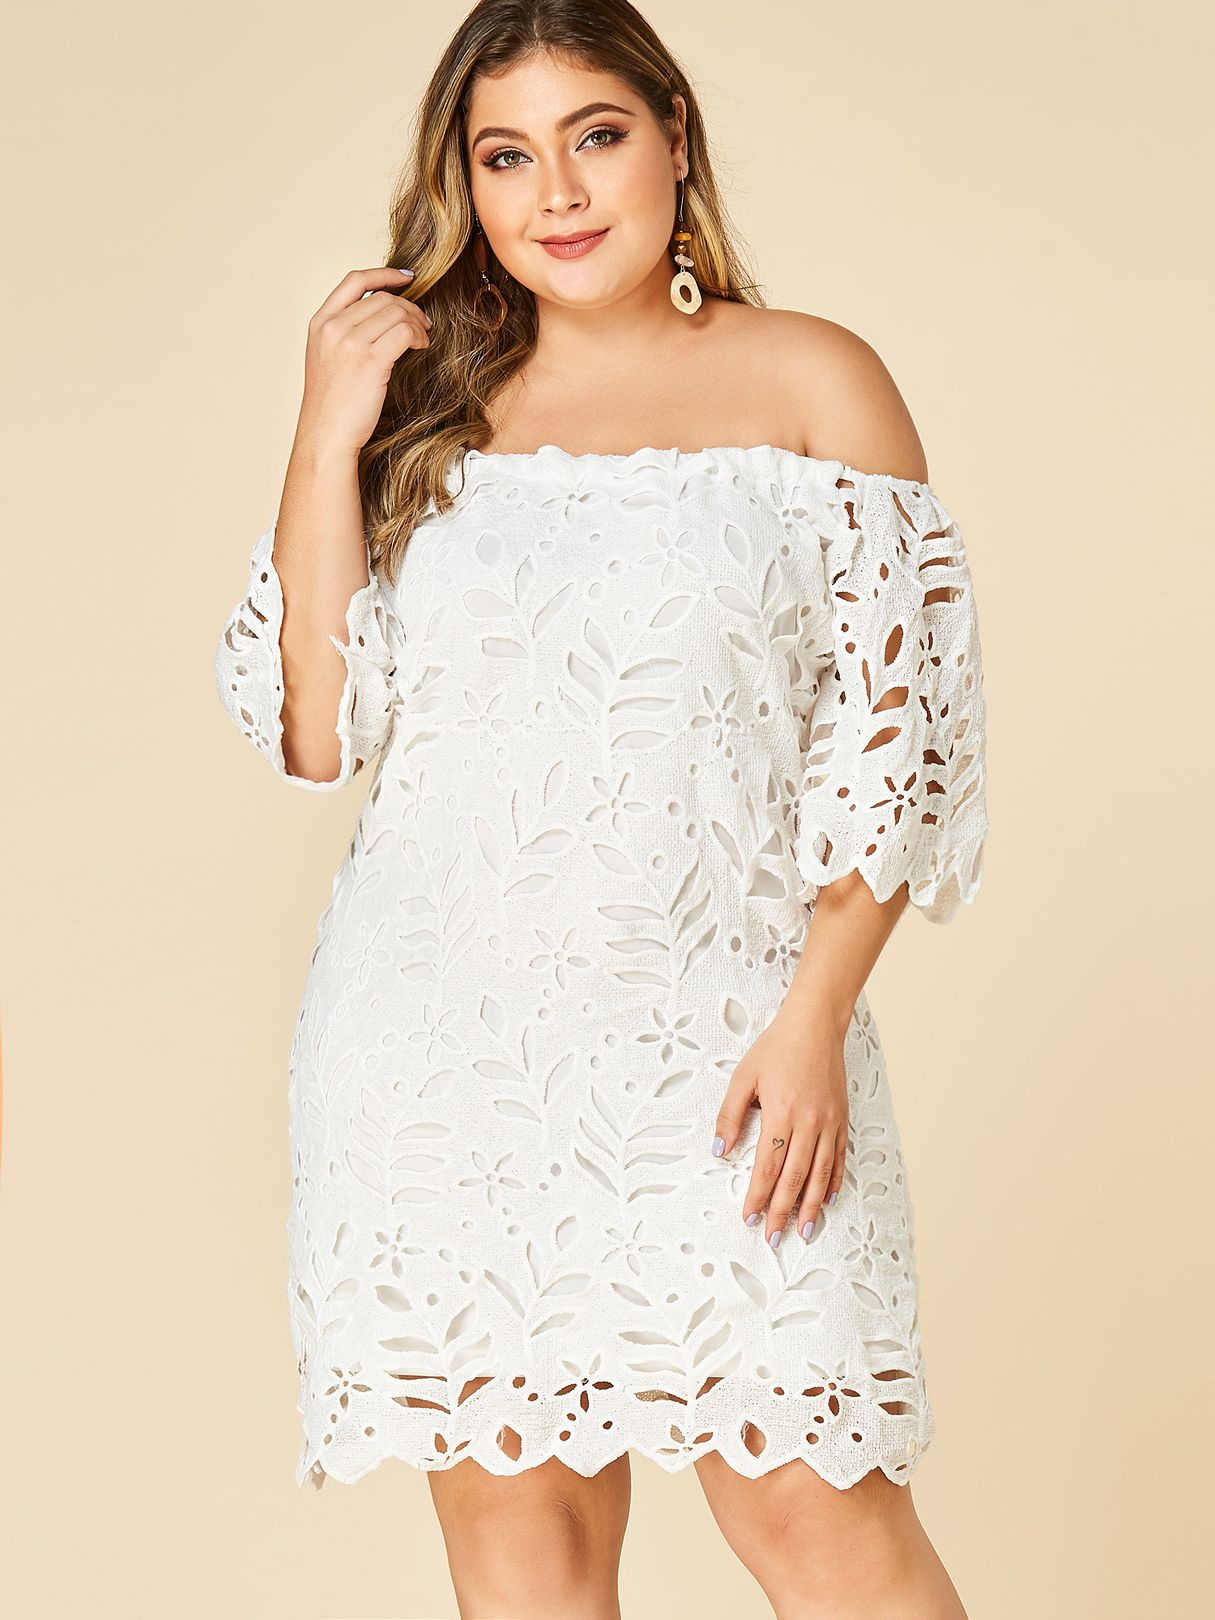 Off Shoulder Hollow Out Lace Dress Mixed Shop Lace White Dress Half Sleeve Dresses Lace Dress